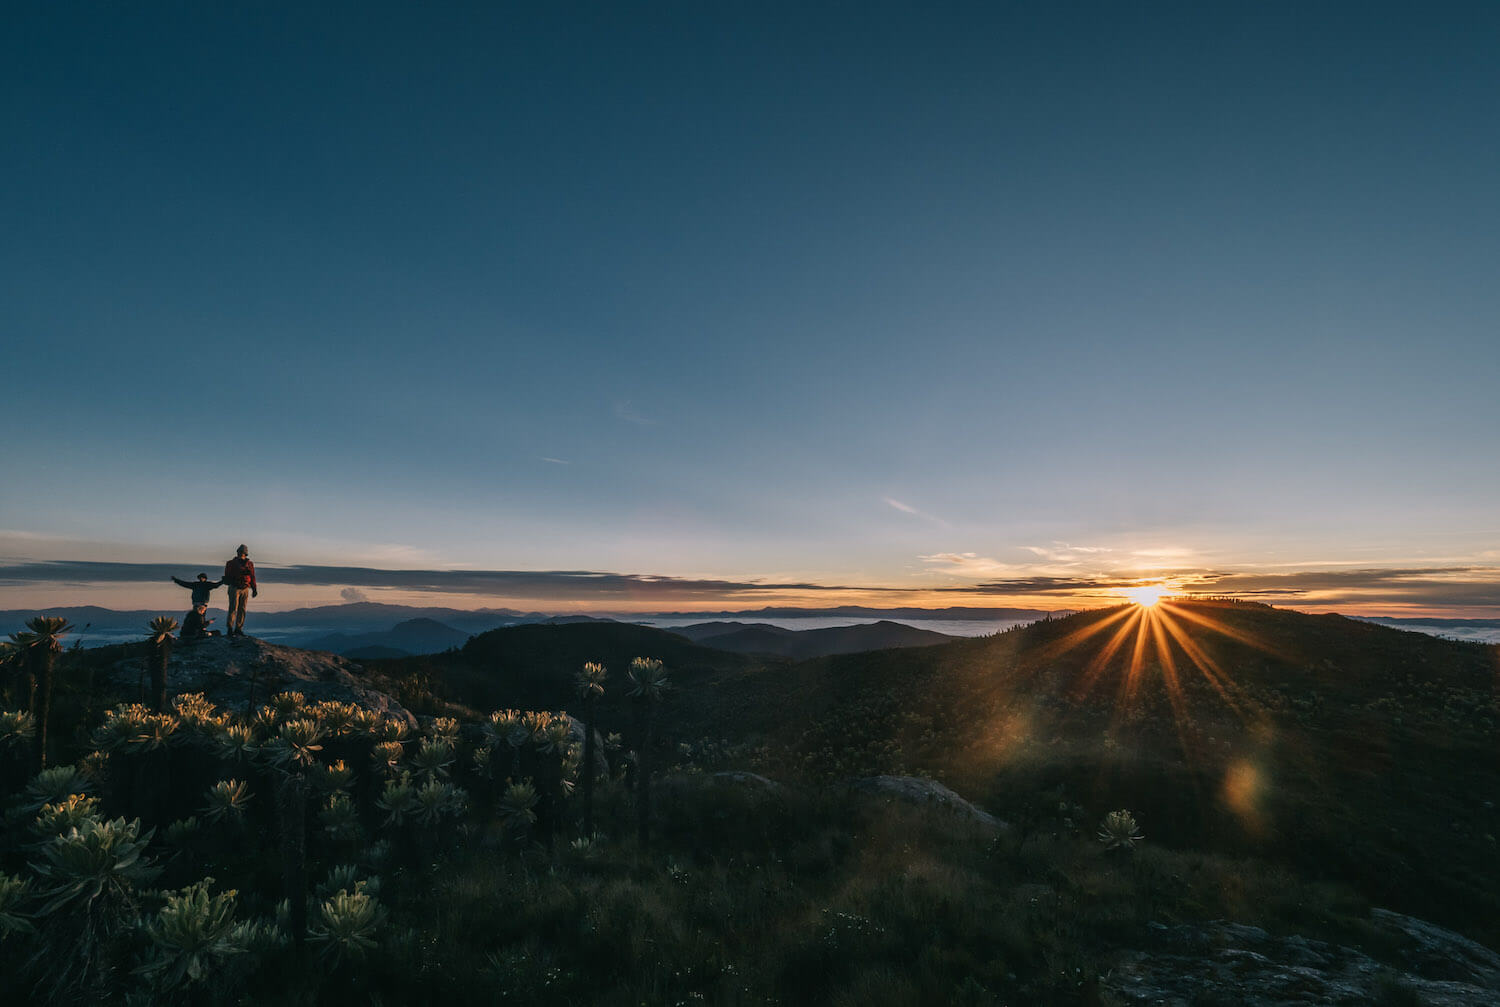 Colombian Paramo del Sol cover image of an amazing sunrise